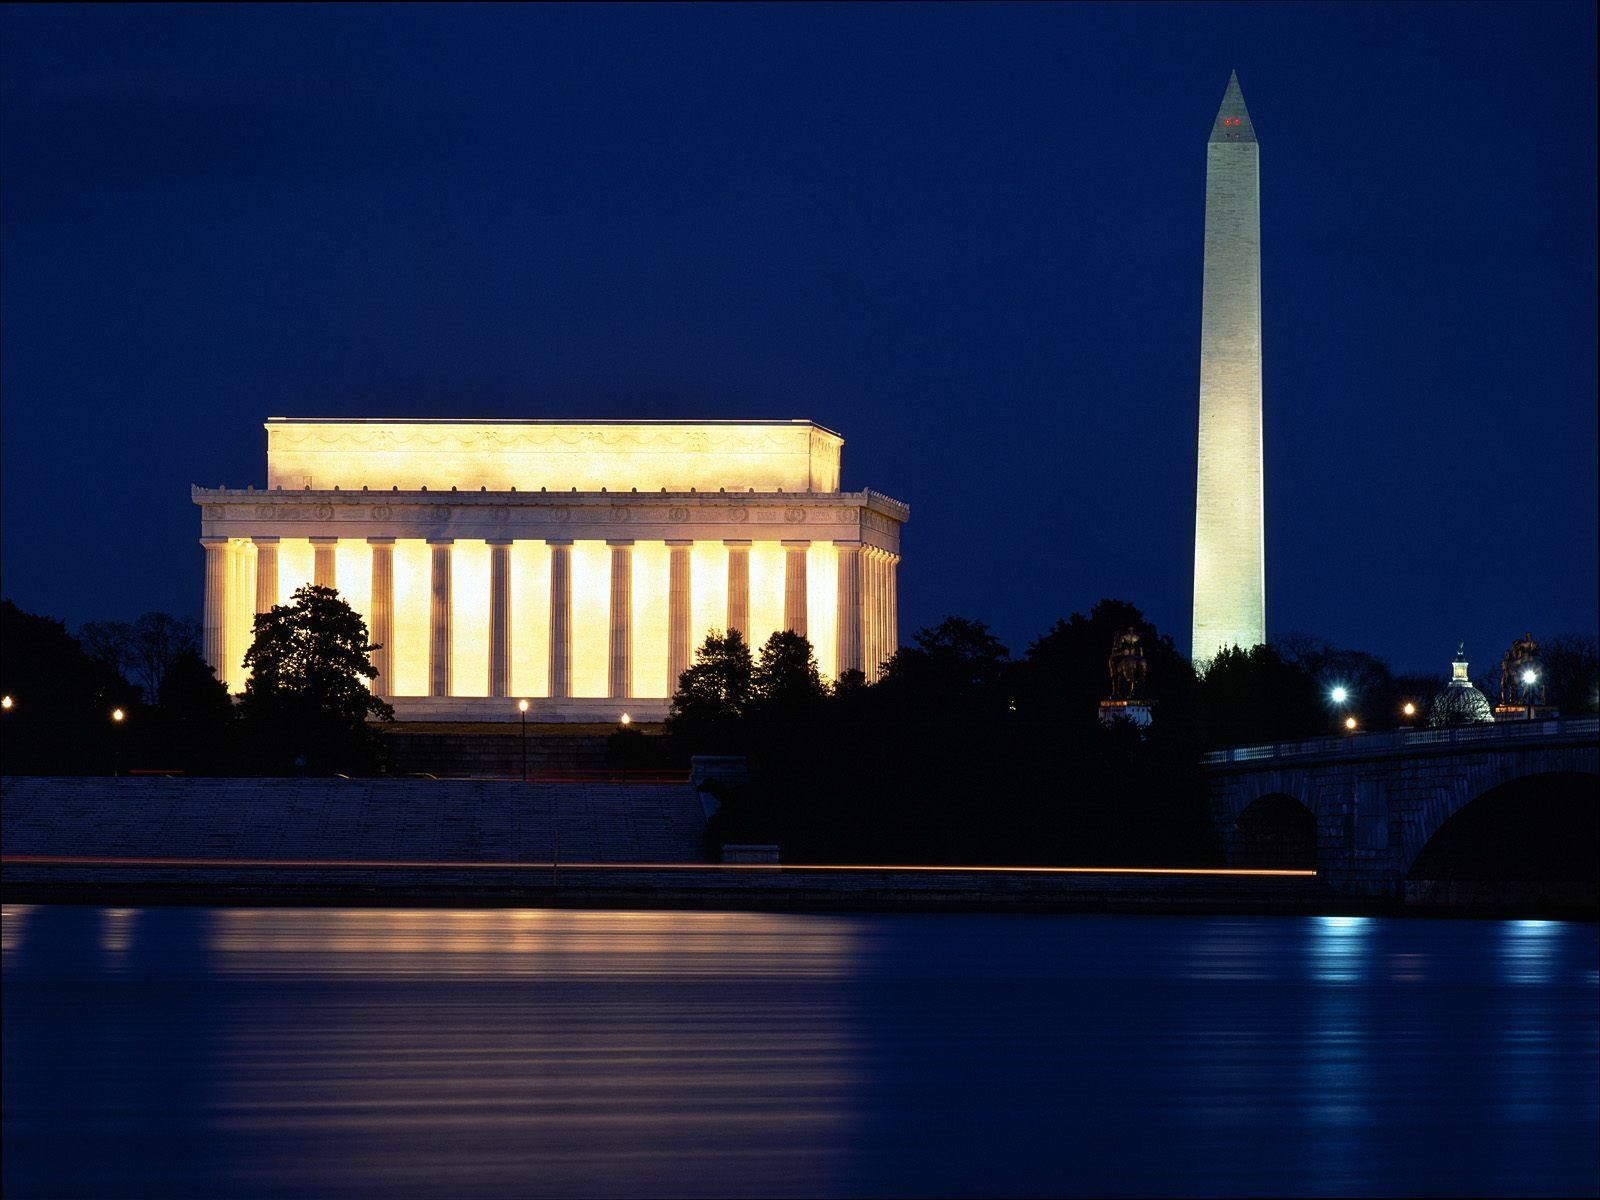 Washington, DC is a place for families to visit